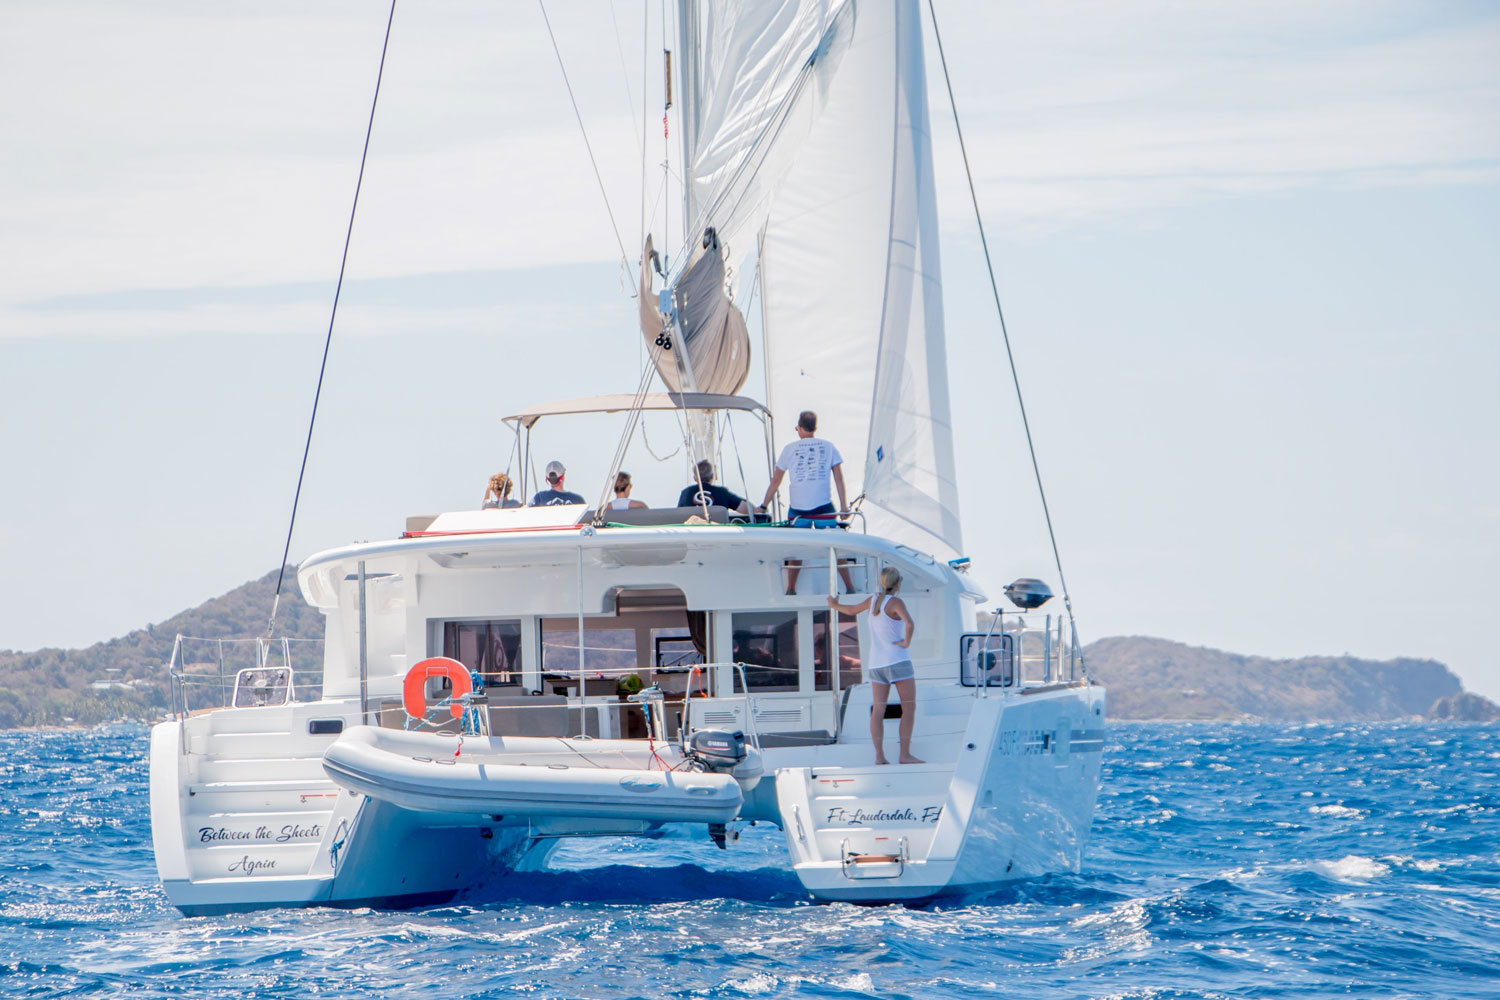 British Virgin Islands Sailing Vacations and FAQ's when